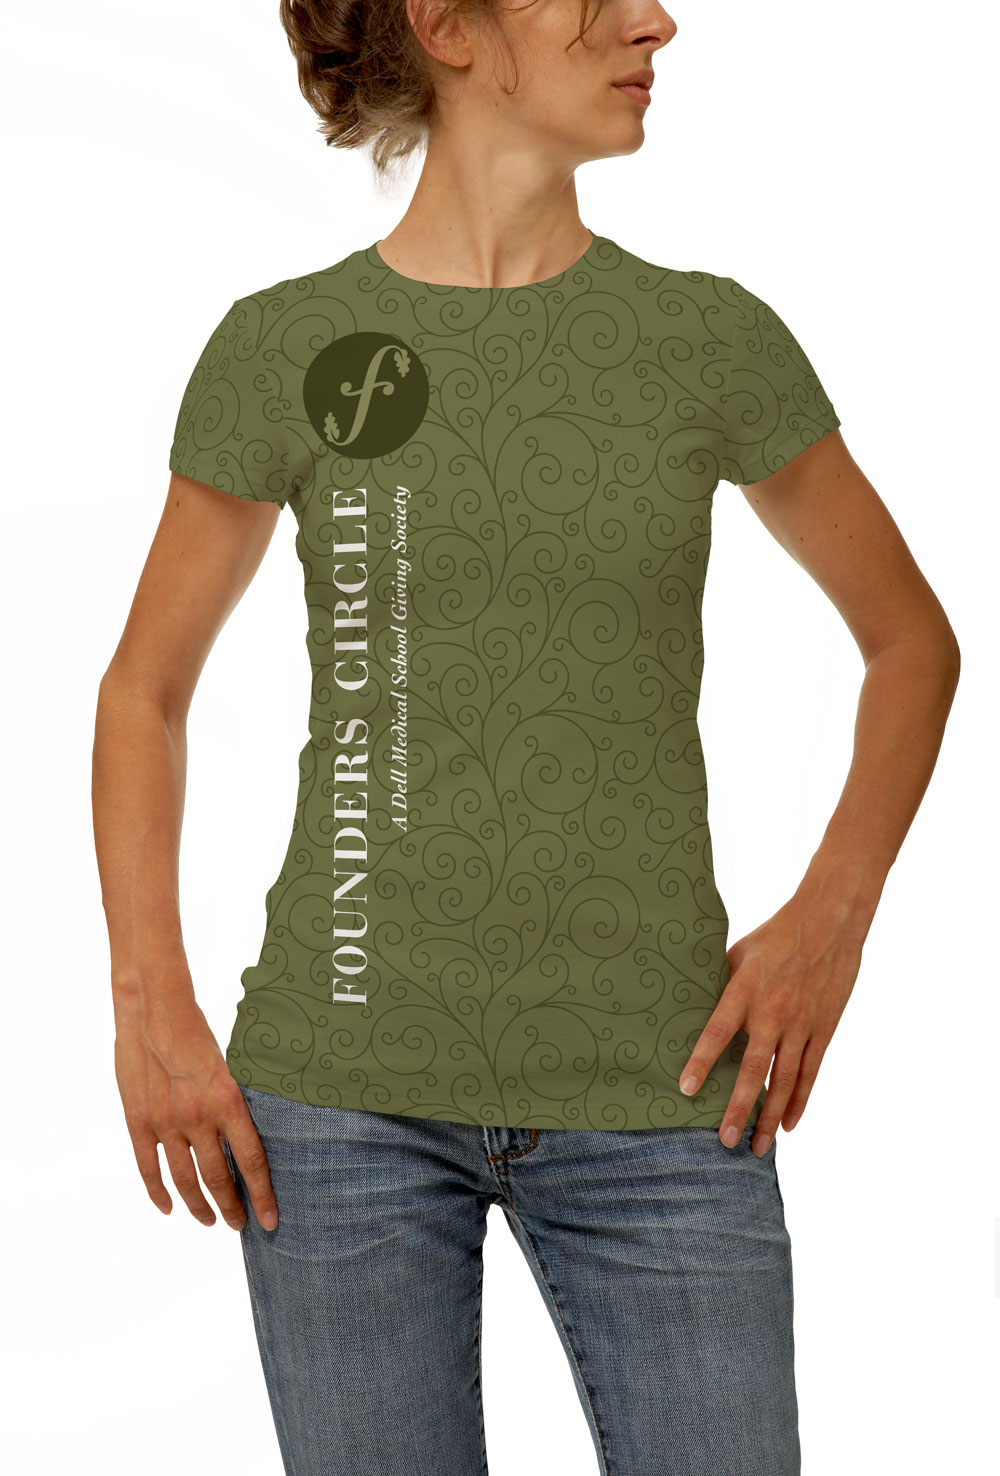 founders-circle-green-tshirt.jpg